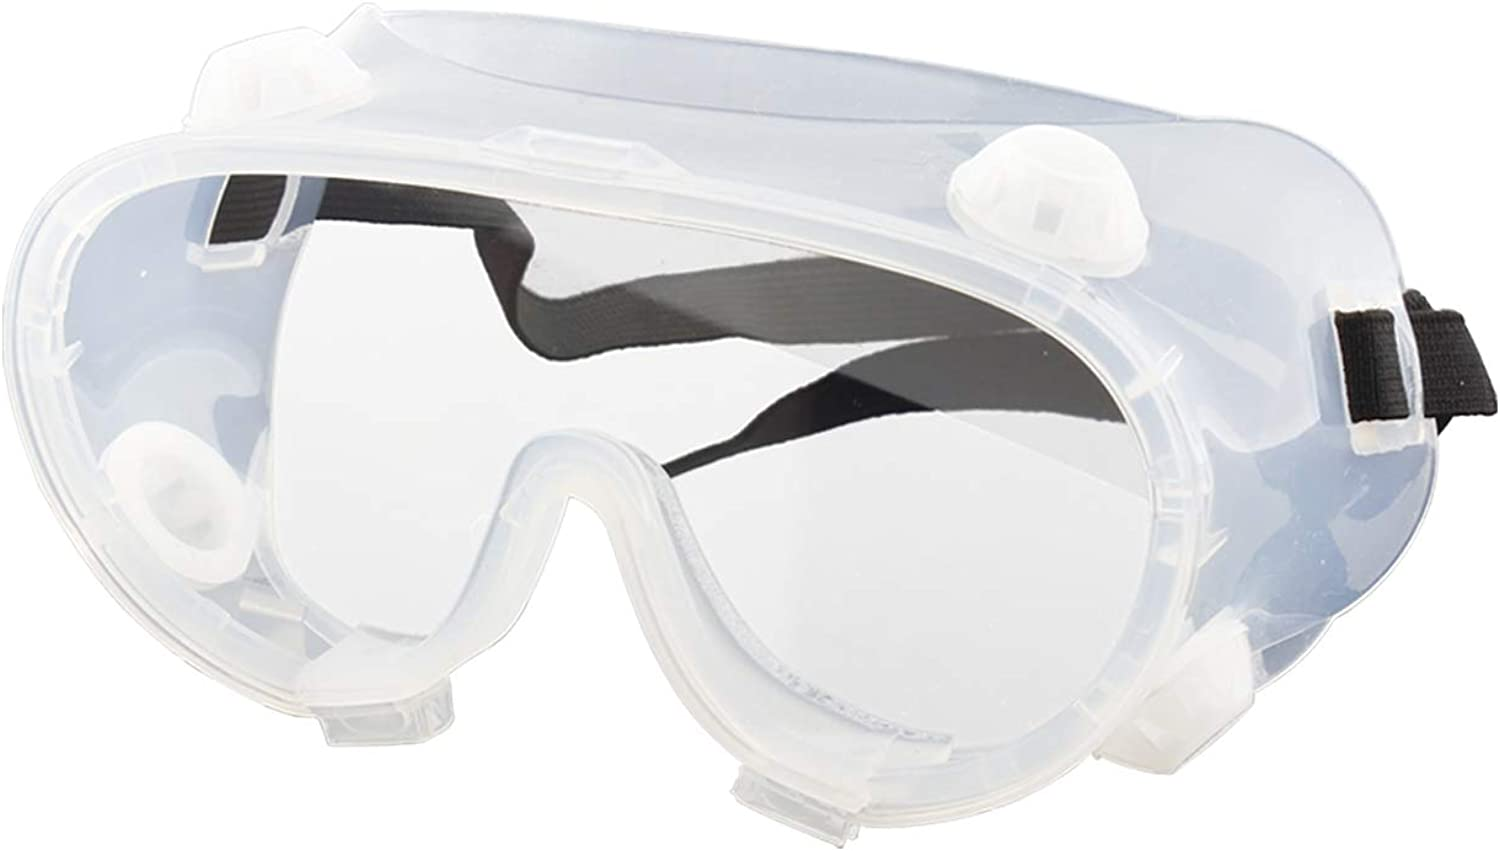 Splash Safety Goggles, BangLong Protective Goggles Wraparound Eye Goggle Glasses Clear Body Anti-Fog Coating Clear Lens Protection for Chemical, Lab, And Workplace - Soft, Vent